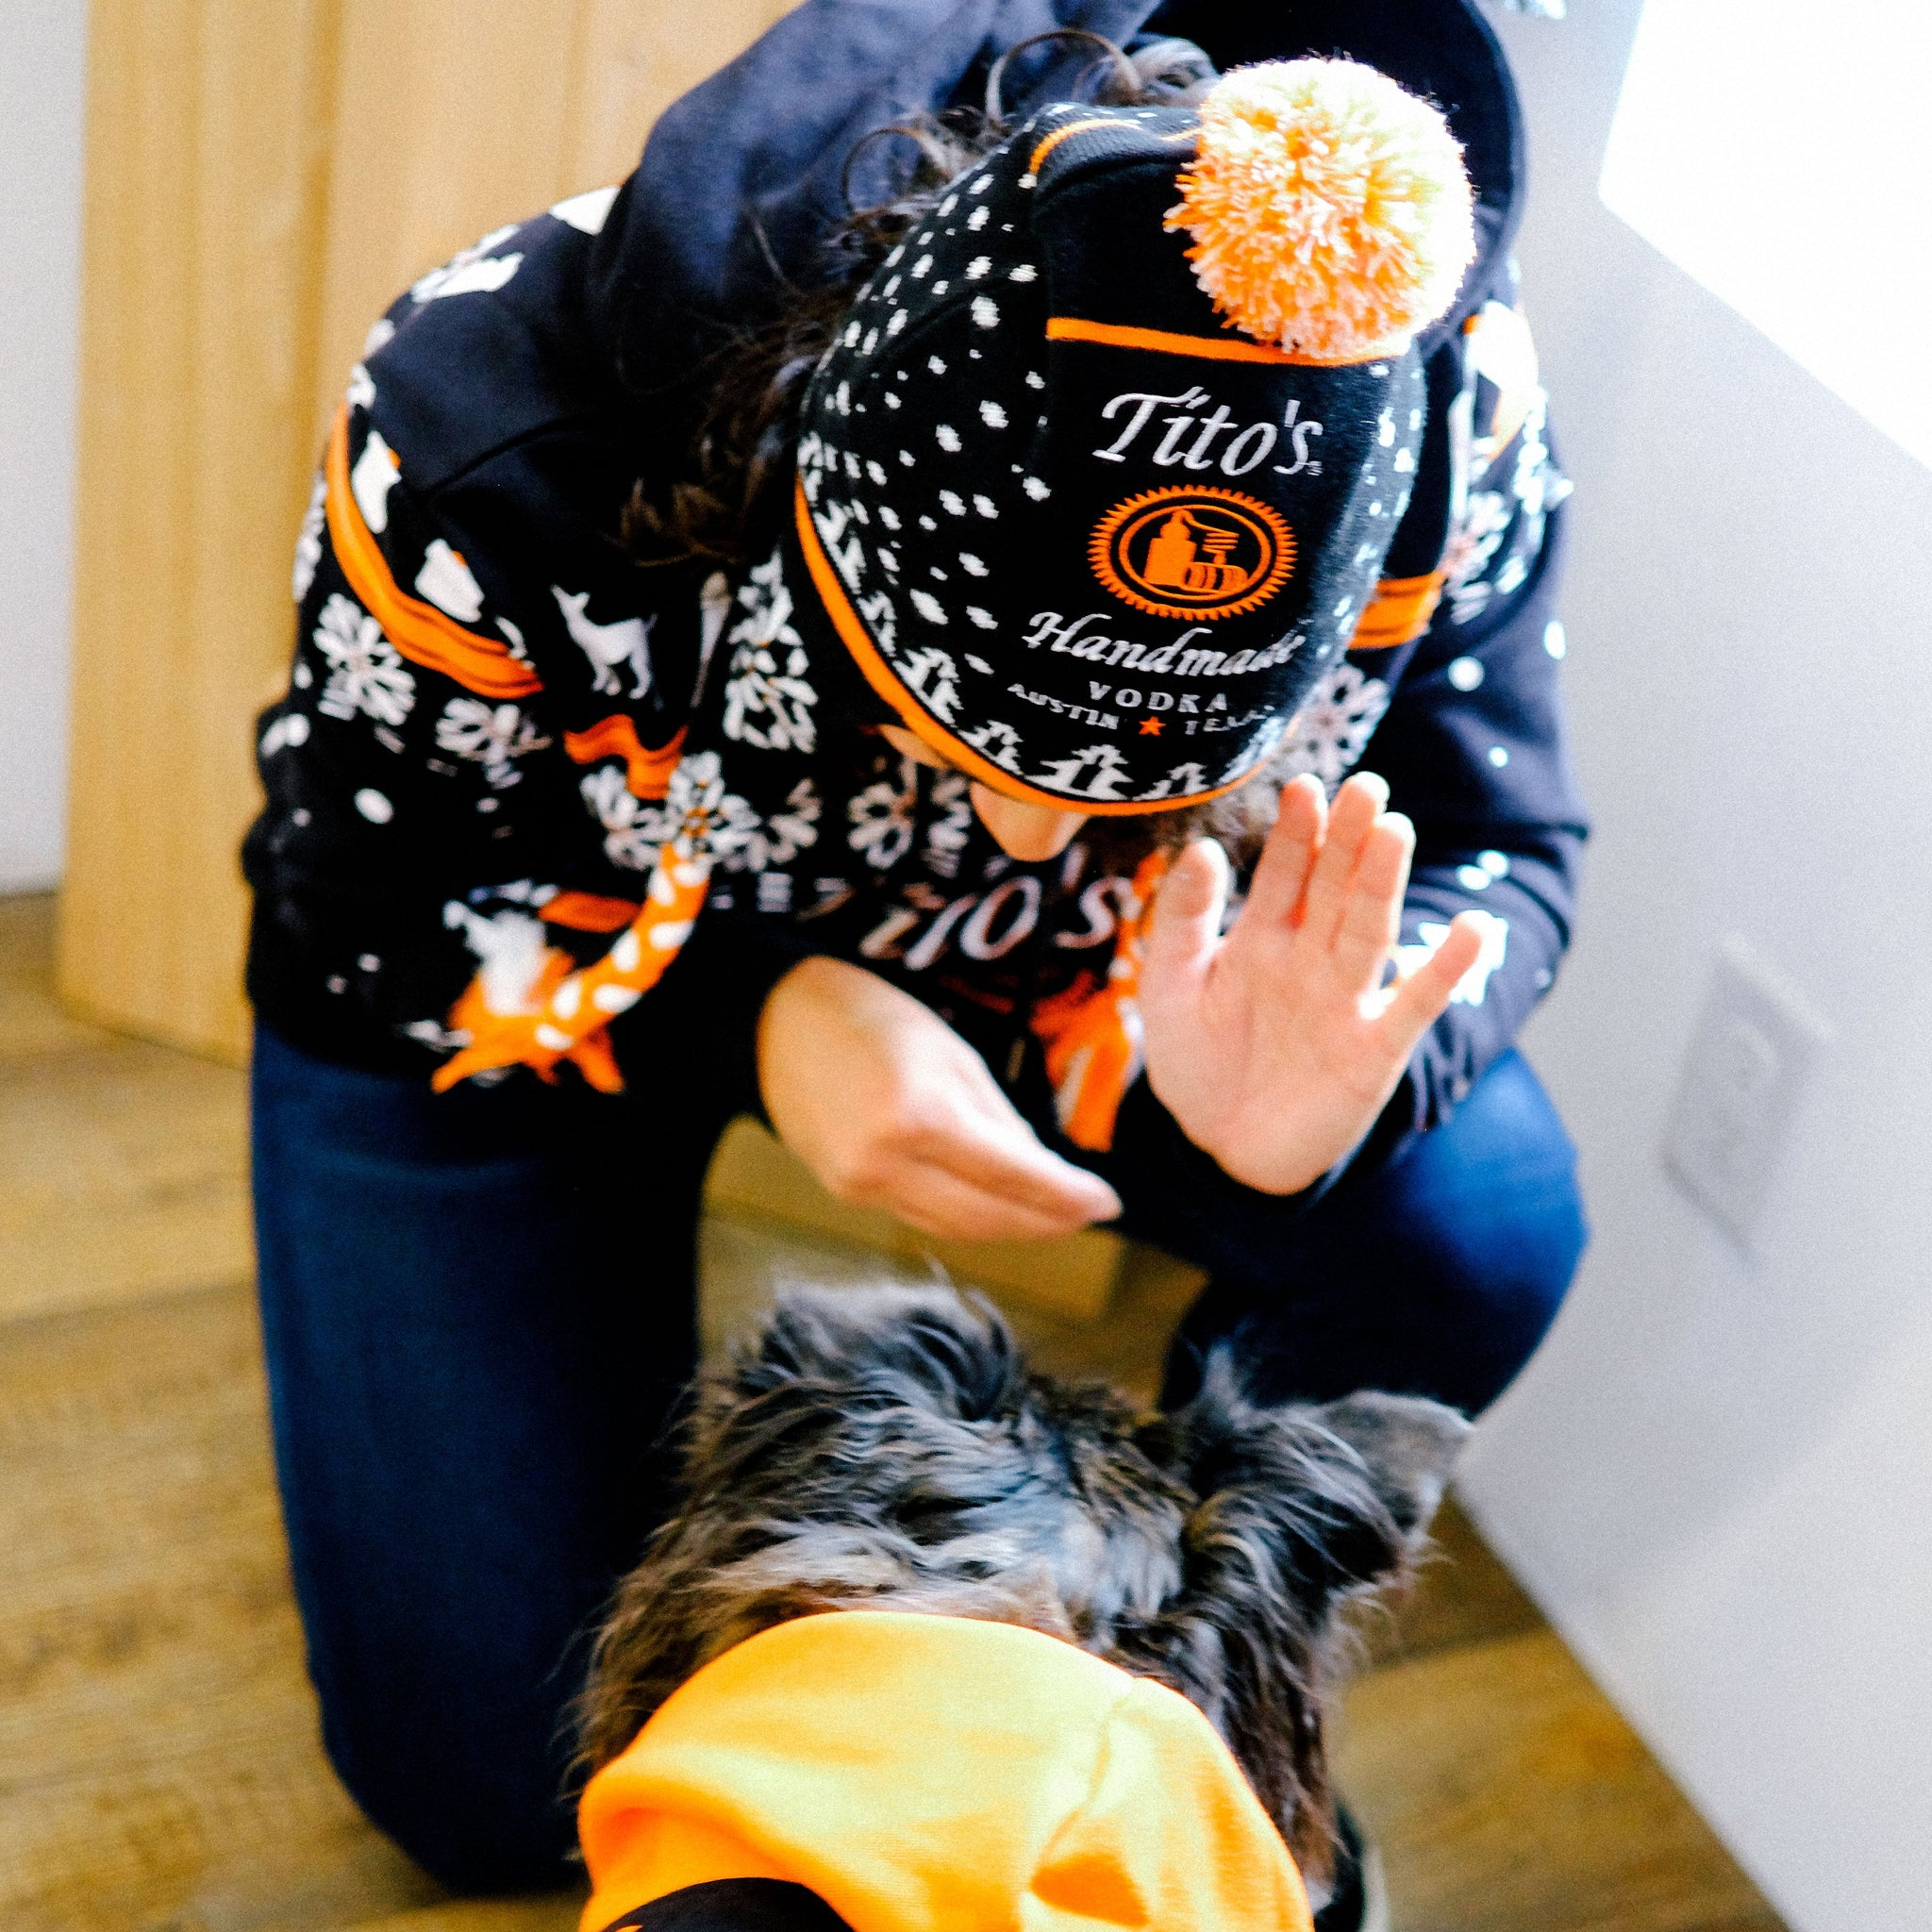 Person wearing black, orange, and white knit hat with Tito's Handmade Vodka logo.